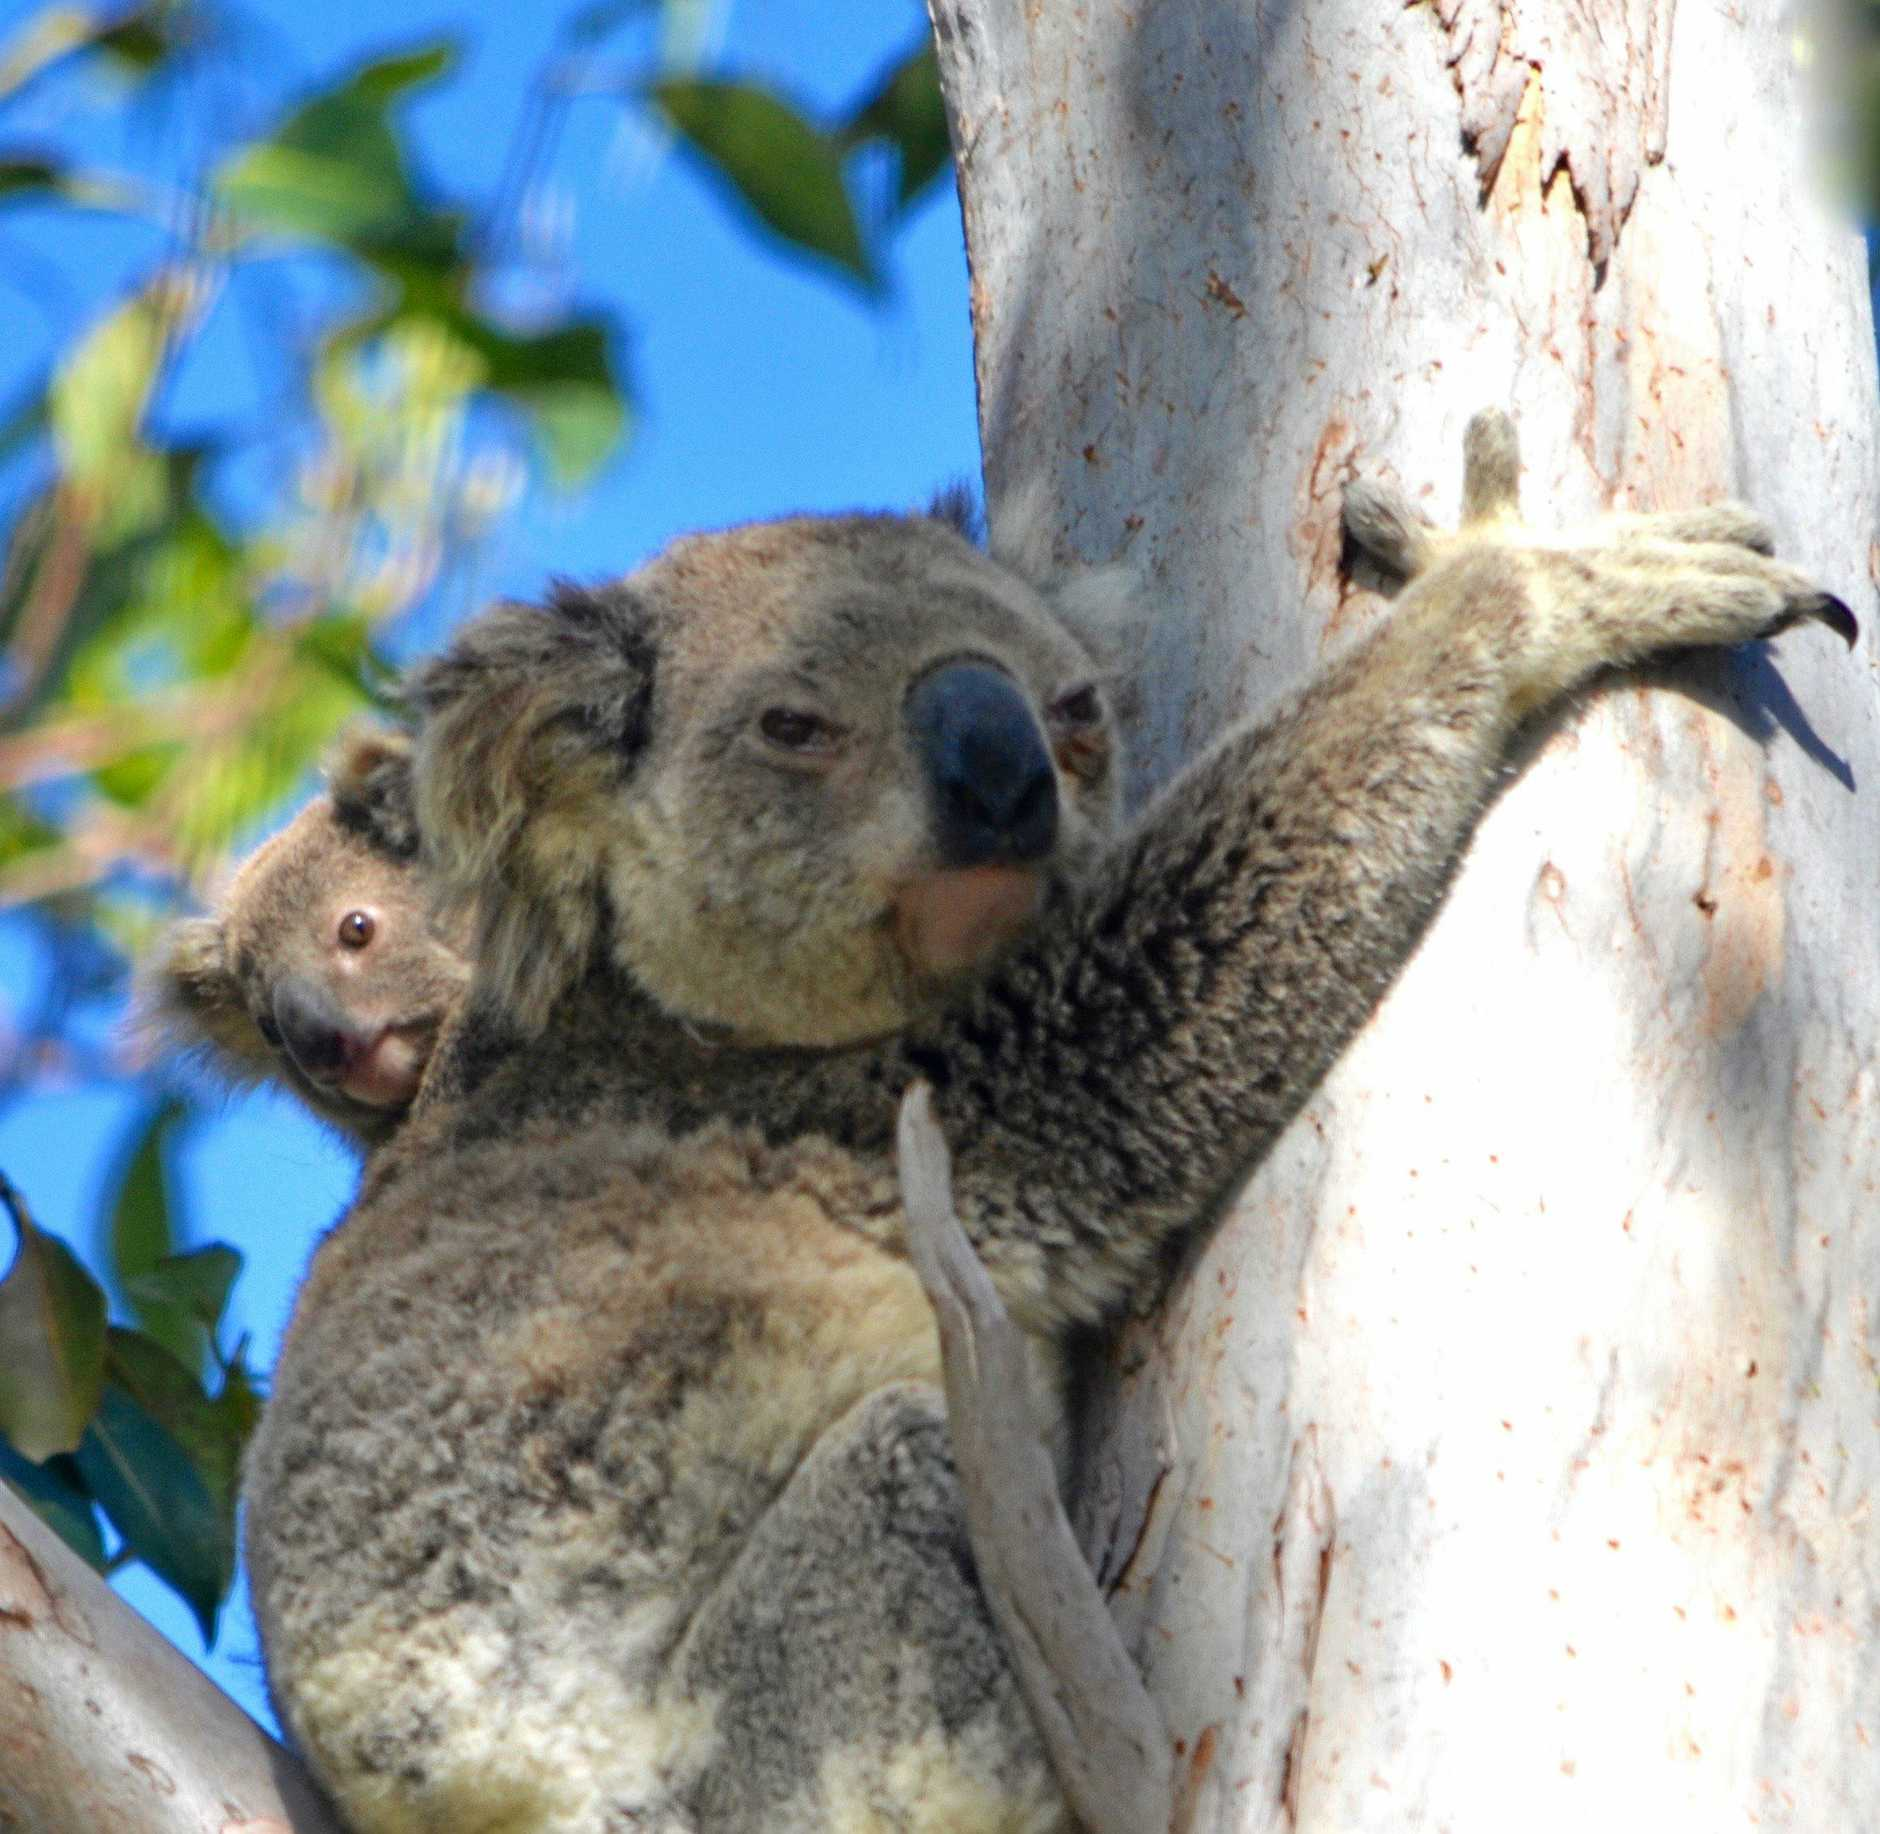 NUMBERS GAME: A humble game of bingo will help Queensland Koala Crusaders protect and rescue local koalas.